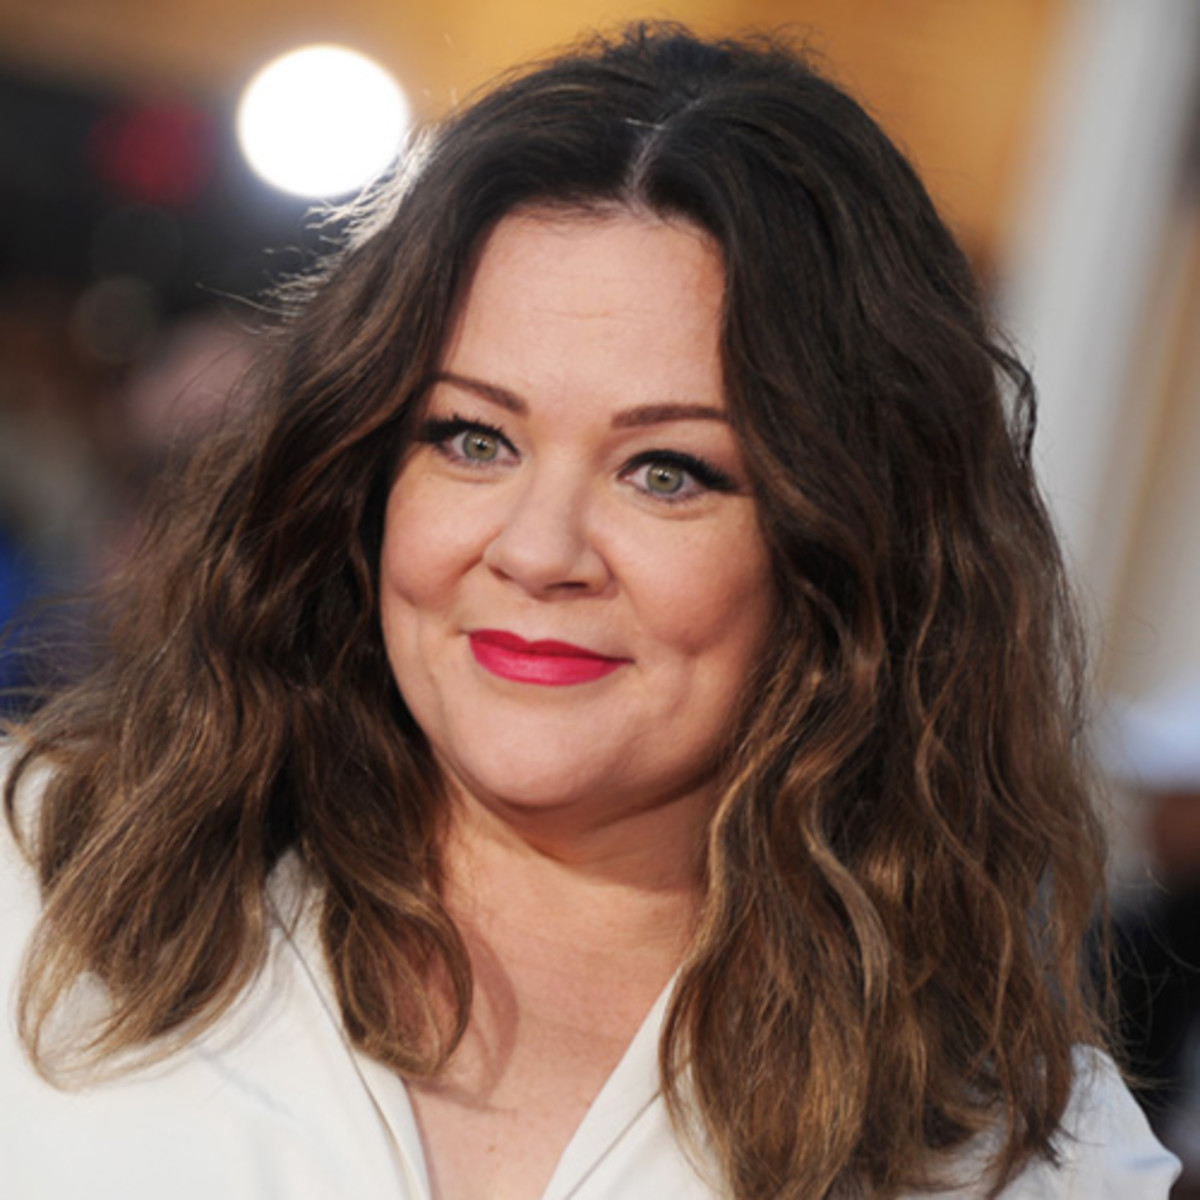 Discussion on this topic: Annette Melton, melissa-mccarthy/